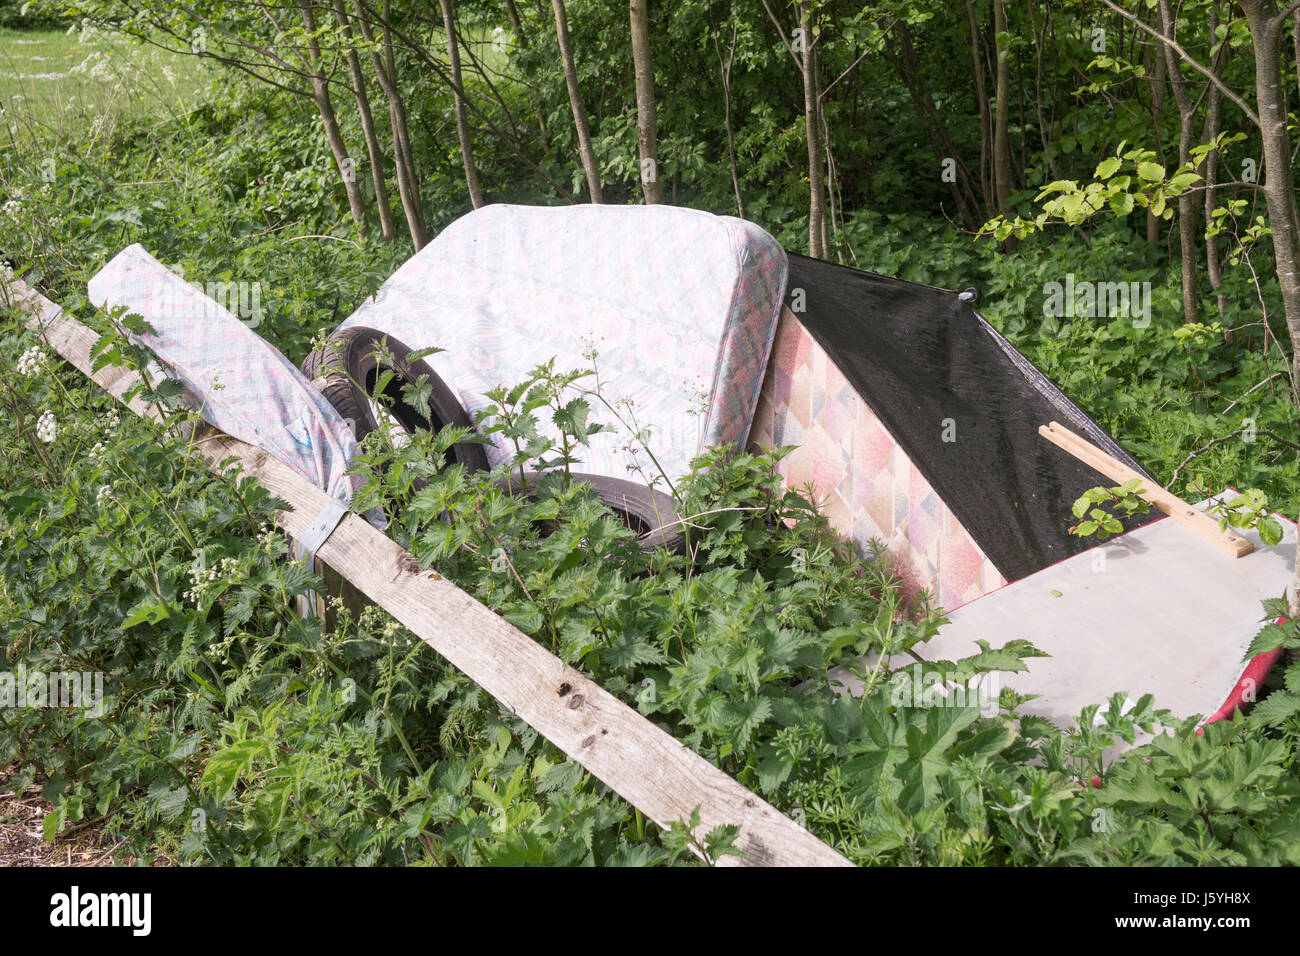 Illegal dumping or fly tipping at Beamish Woods car park, Co. Durham, England, UK - Stock Image